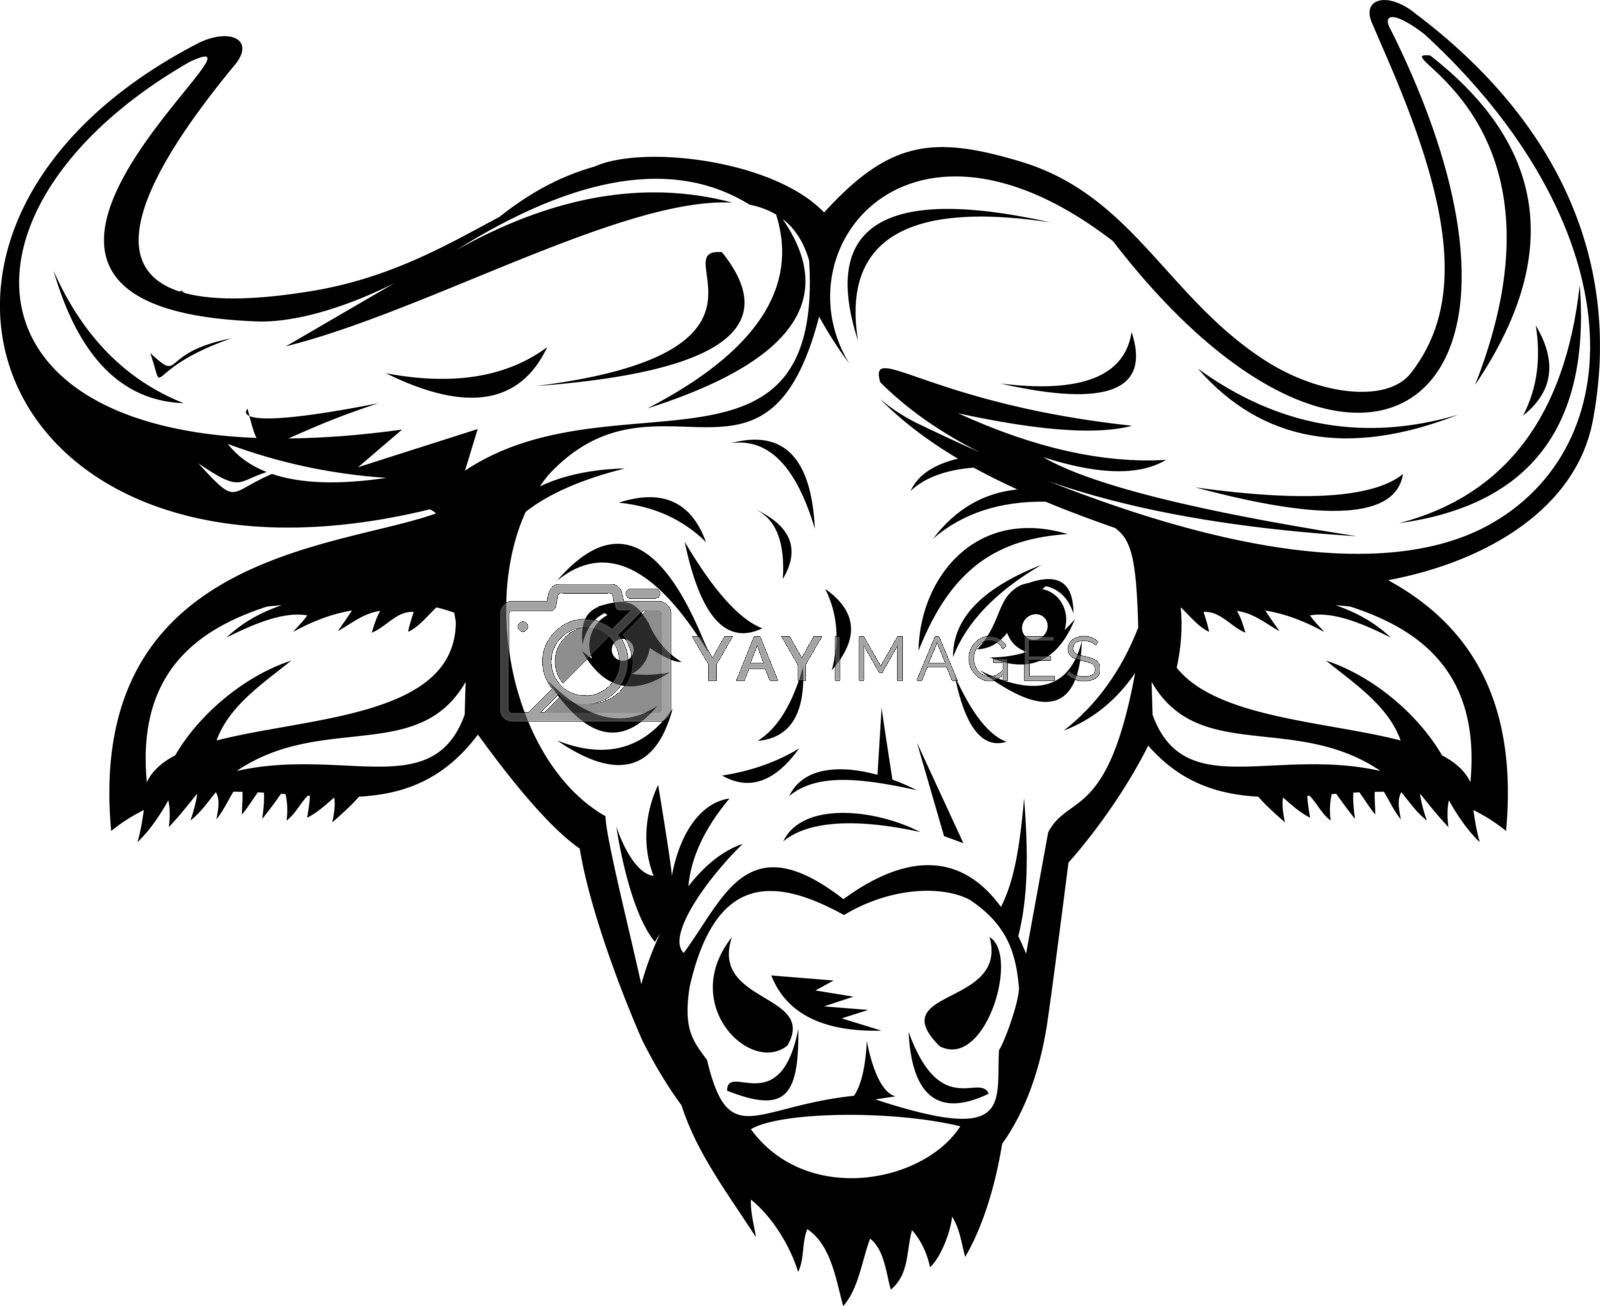 Retro style illustration of head of an African buffalo or Cape buffalo, a large sub-Saharan African bovine viewed from front on isolated background done in black and white.